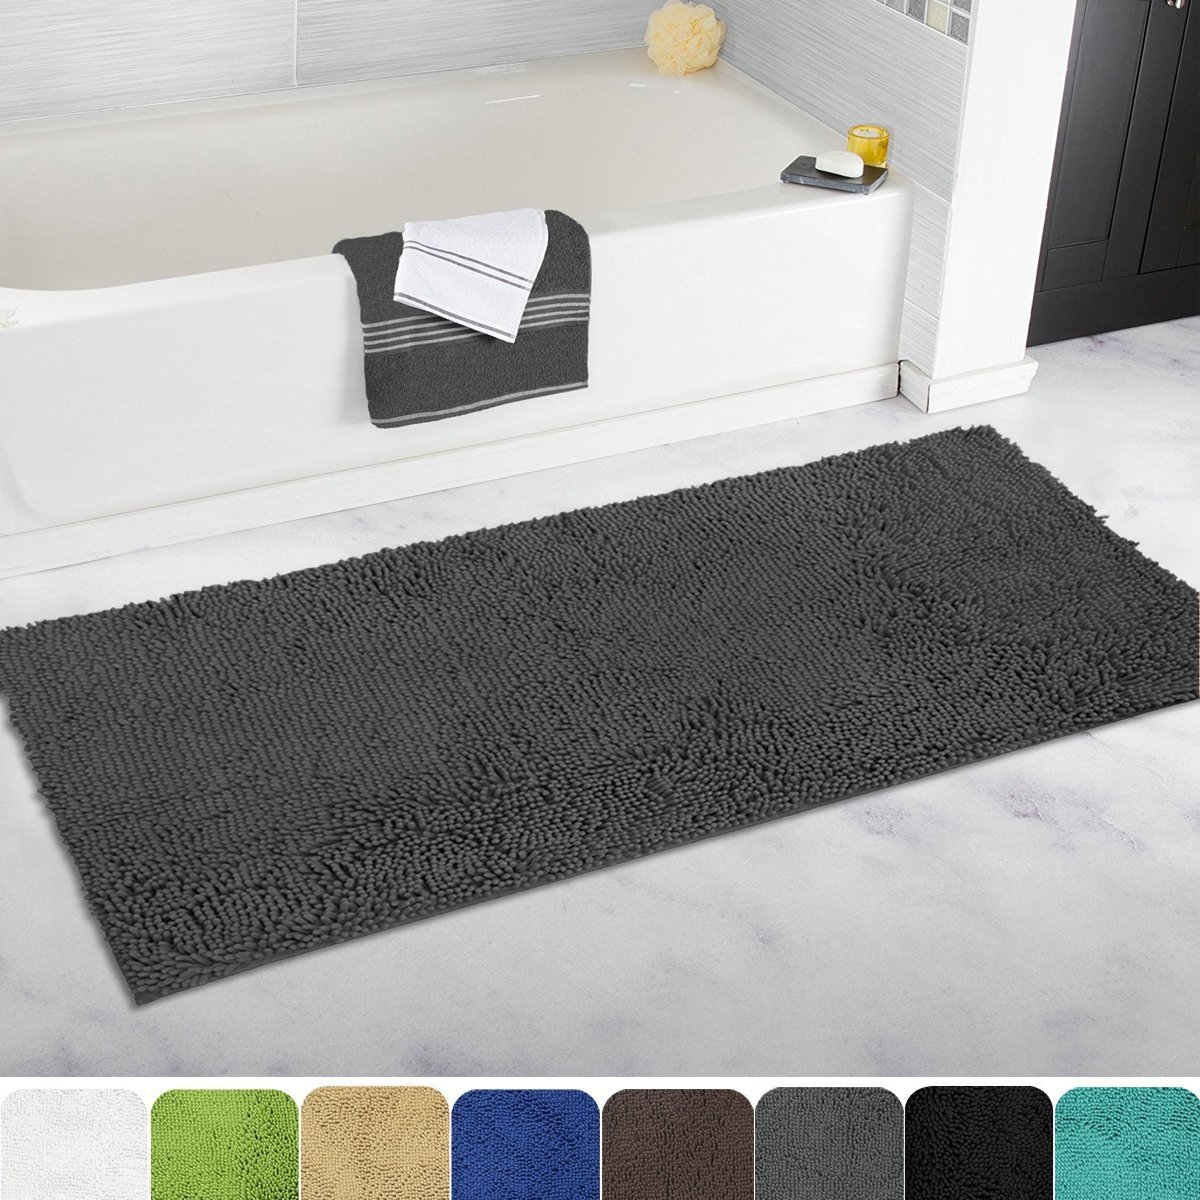 Mayshine Bath Mat Runners For Bathroom Rugs,Long Floor Mats,Extra Soft, Absorbent, Thickening Shaggy Microfiber,Machine Washable, Perfect For Doormats,Tub, Shower(27.5 X47 Inch Dark Gray) by Mayshine